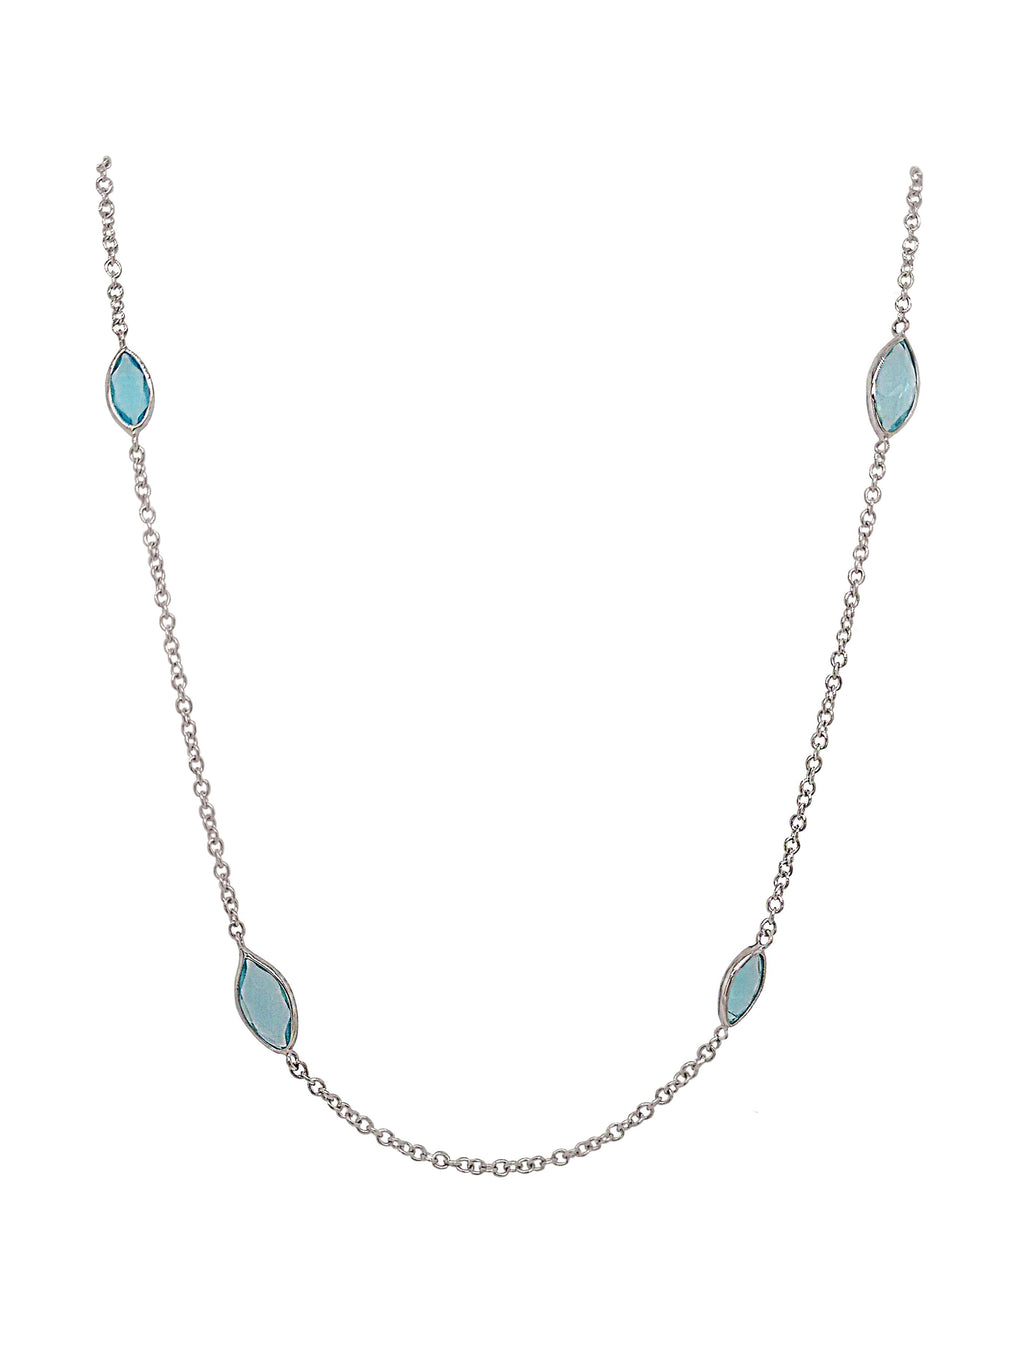 9ct White Gold Marquise Blue Topaz Necklace